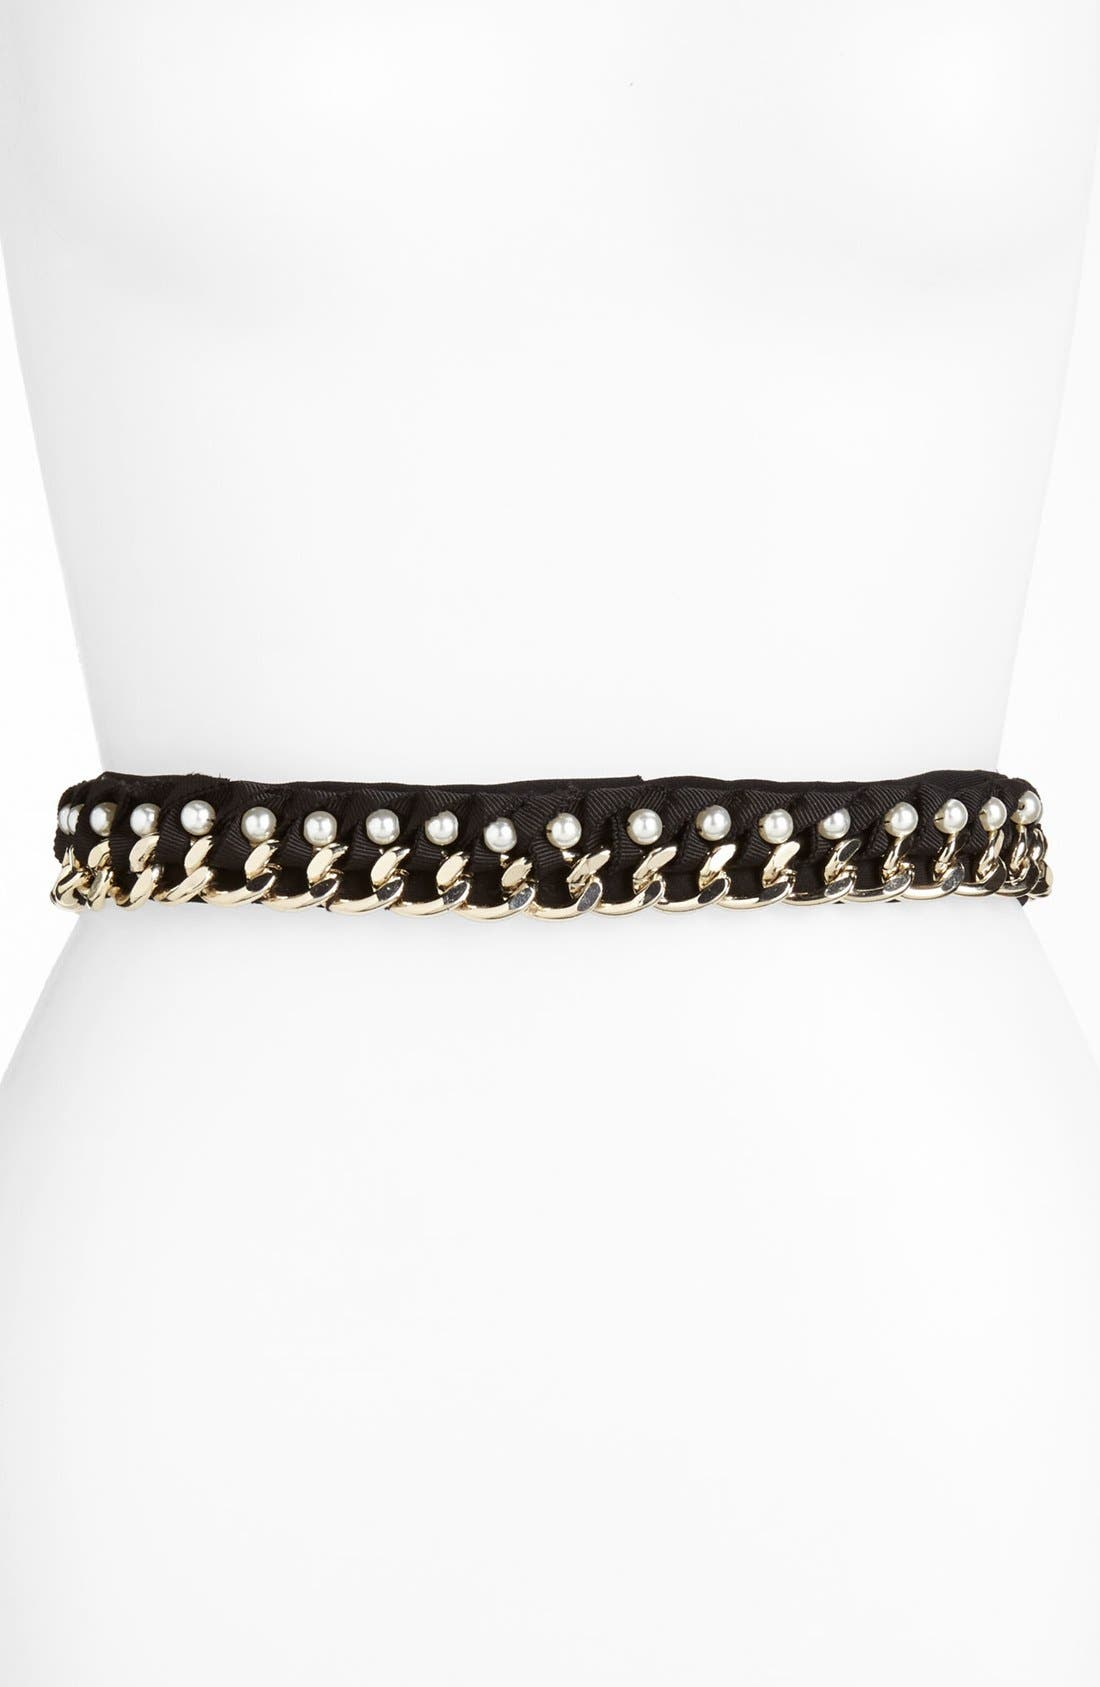 Alternate Image 1 Selected - St. John Collection Chain, Crepe & Grosgrain Belt